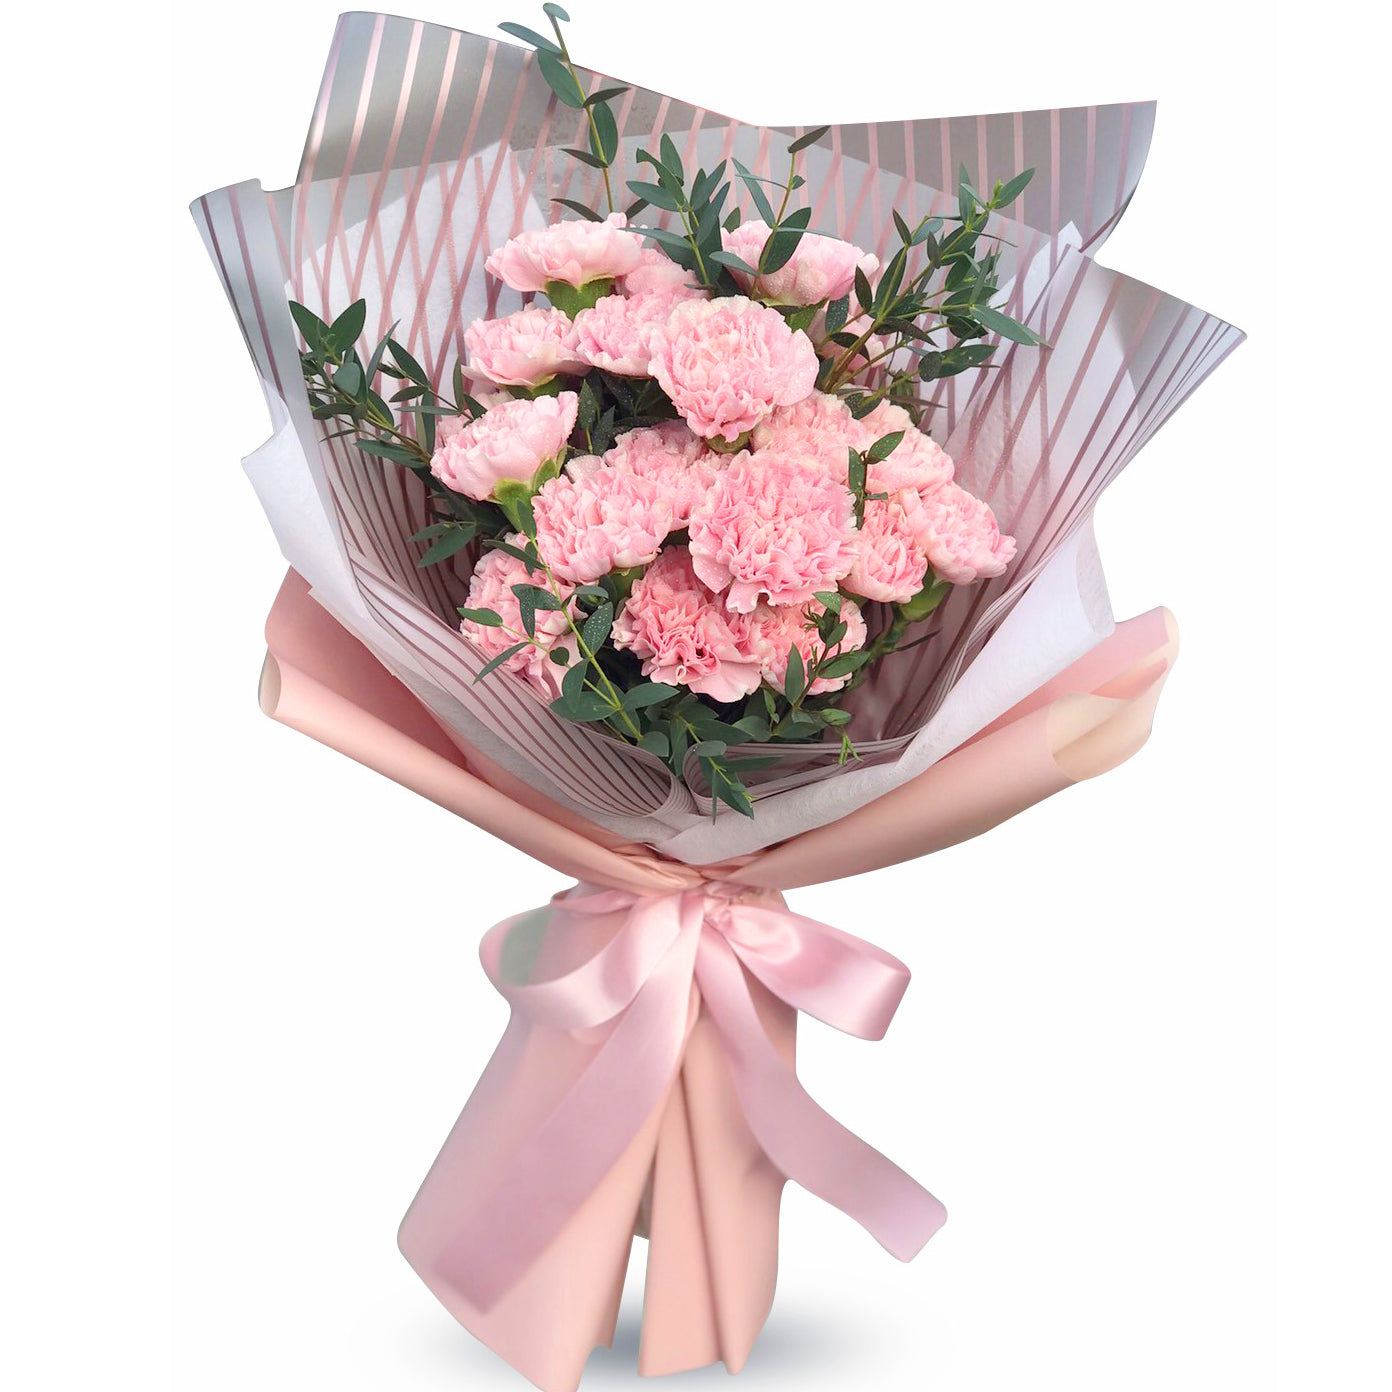 All Pink Fluffy Bouquet Of Carnations - April Flora